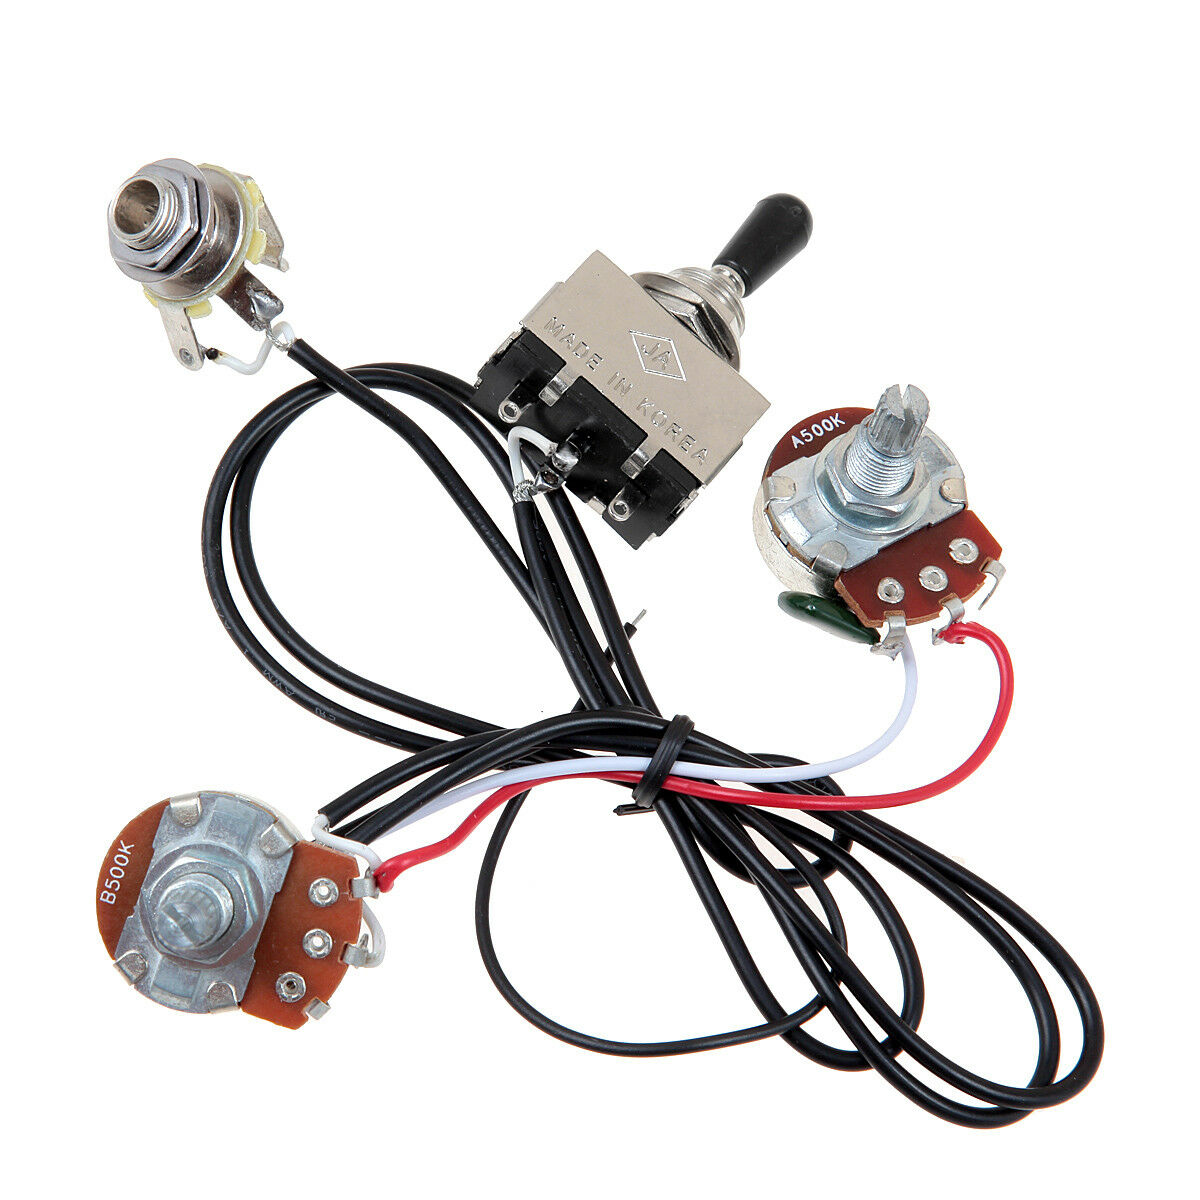 hight resolution of guitar wiring harness prewired two pickup 500k pots 3 way toggle 3 way switch guitar wiring harness